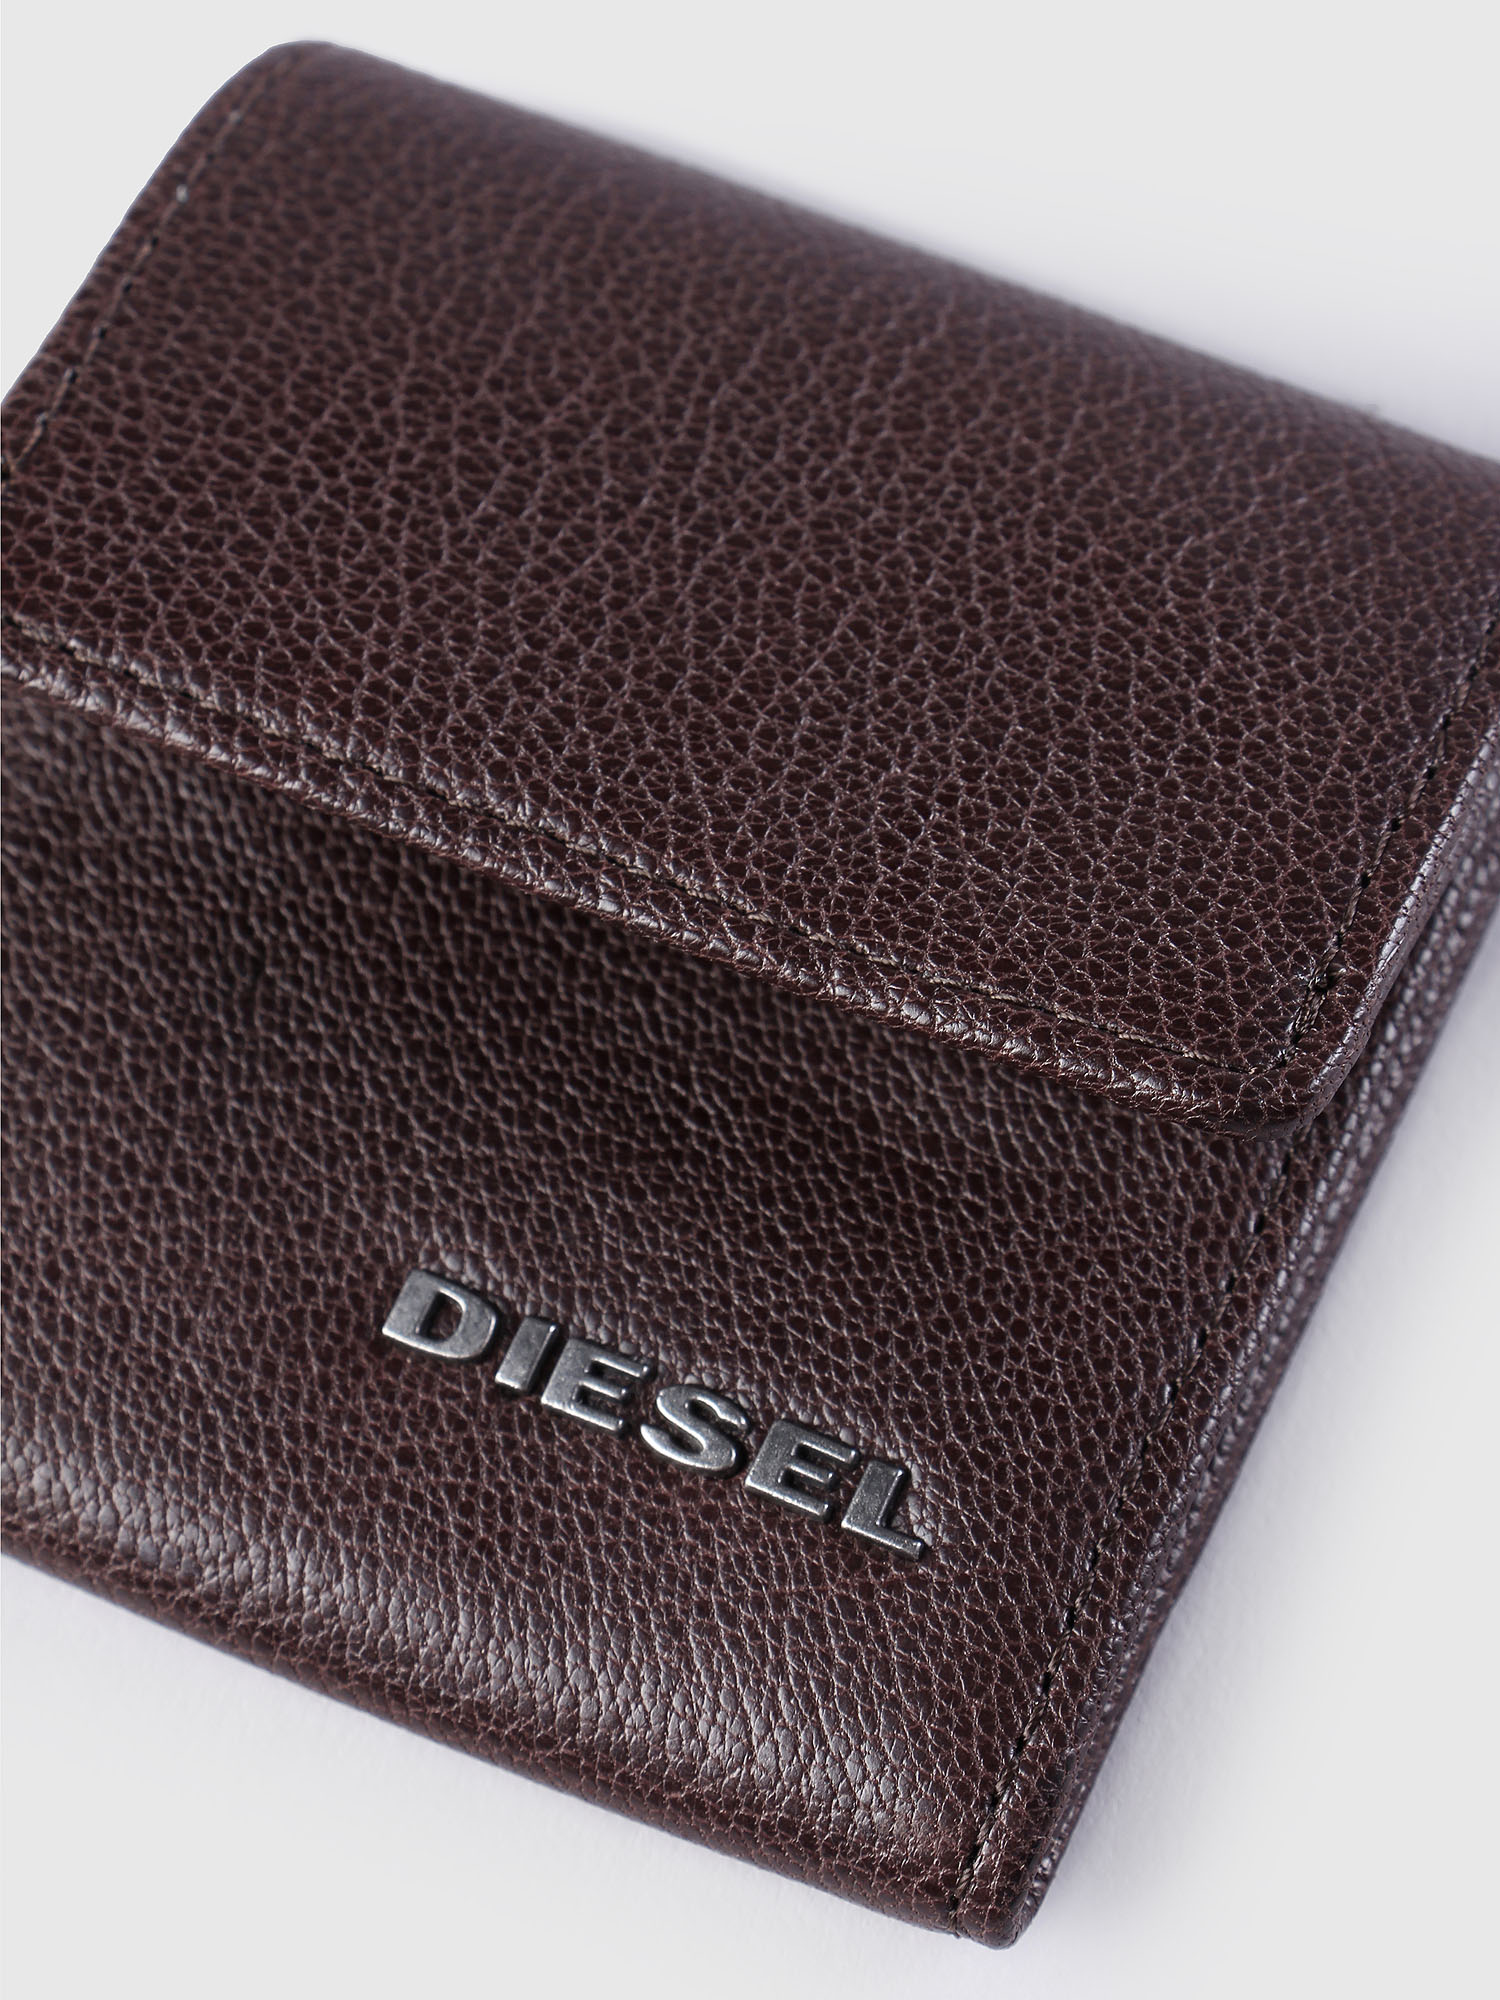 Diesel - KOPPER,  - Small Wallets - Image 3